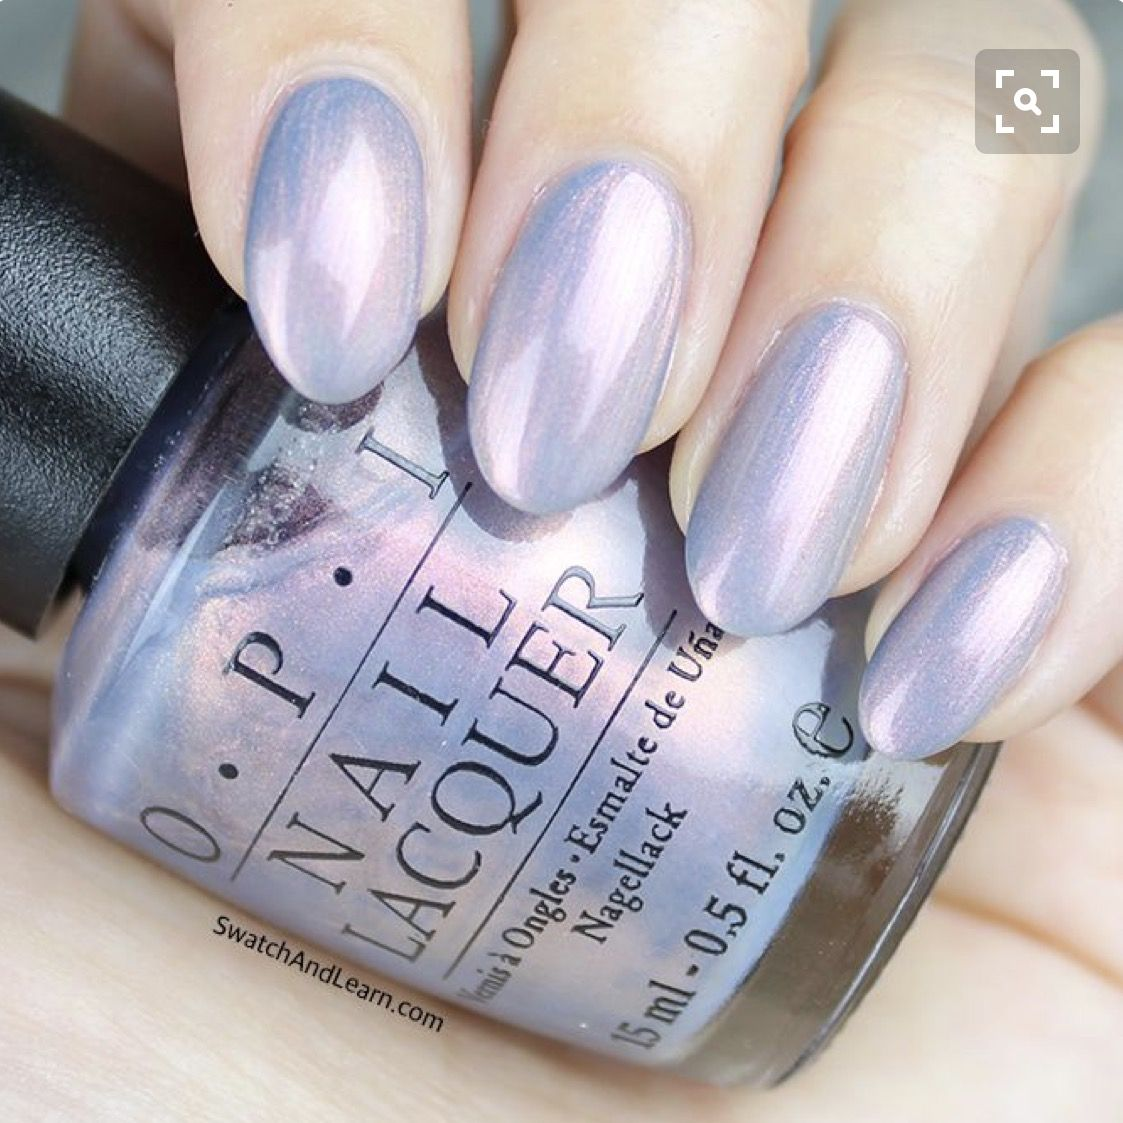 Love this color | Nails | Pinterest | Esmalte para uñas, Esmalte y ...